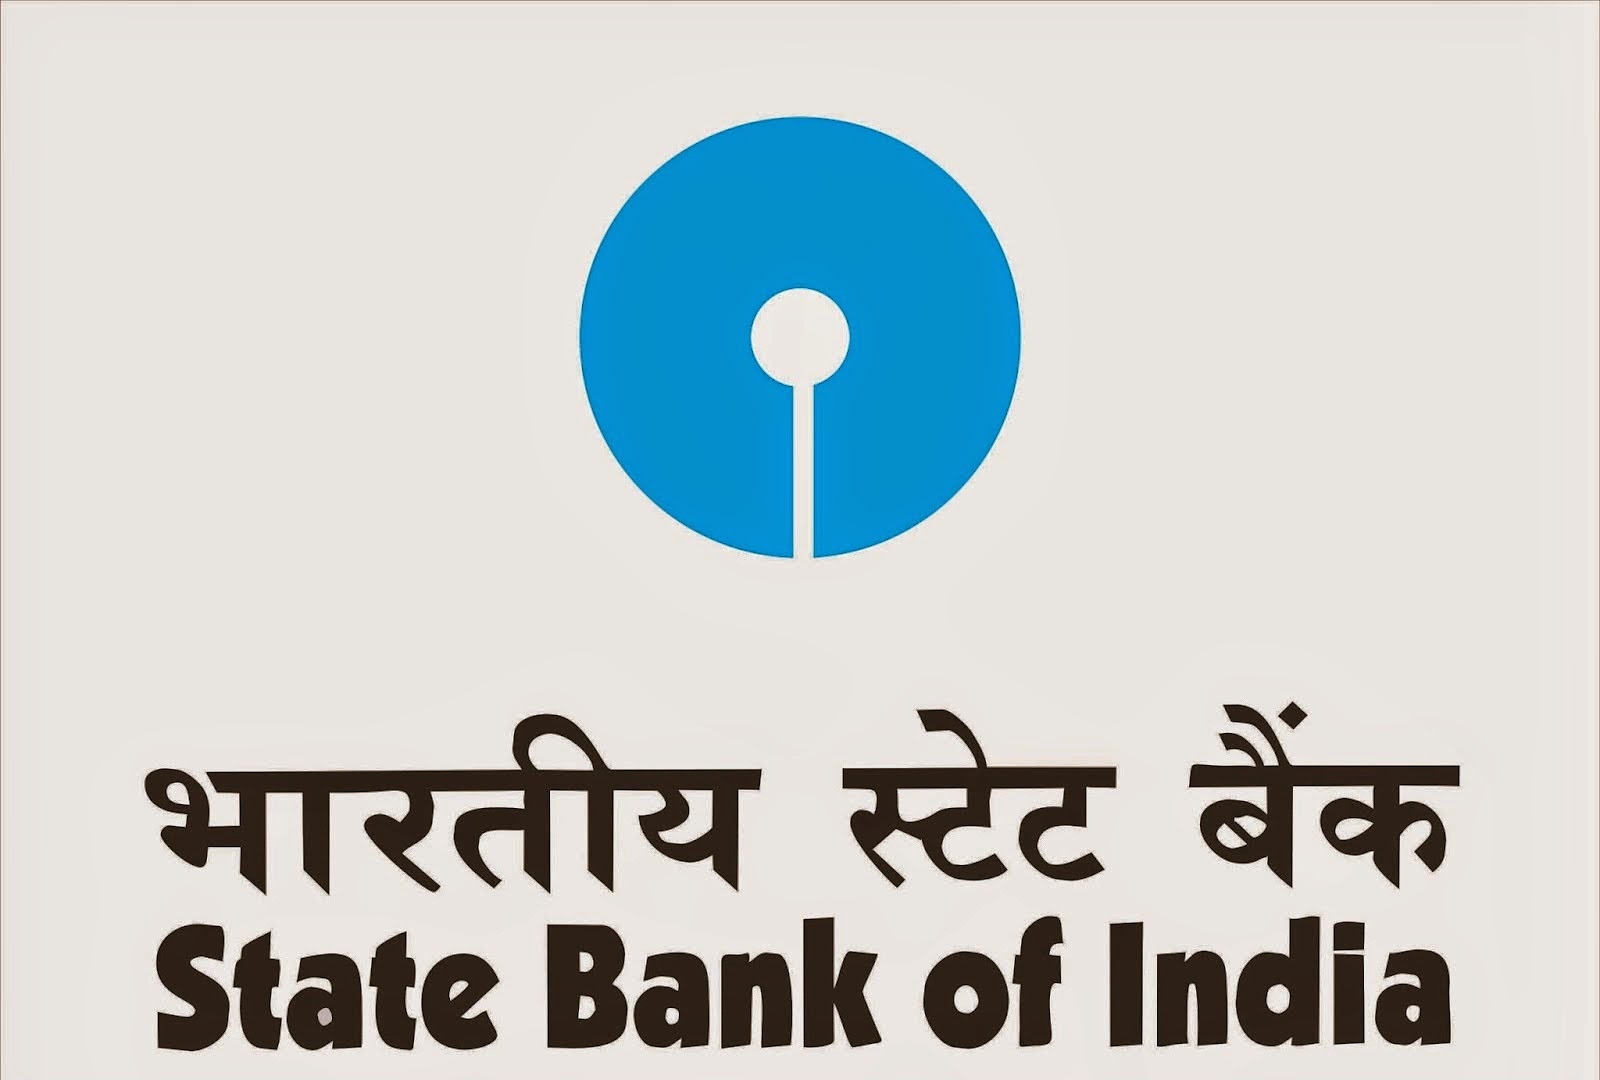 BHIM App For SBI - How To Use BHIM App as State Bank Of India Customer?